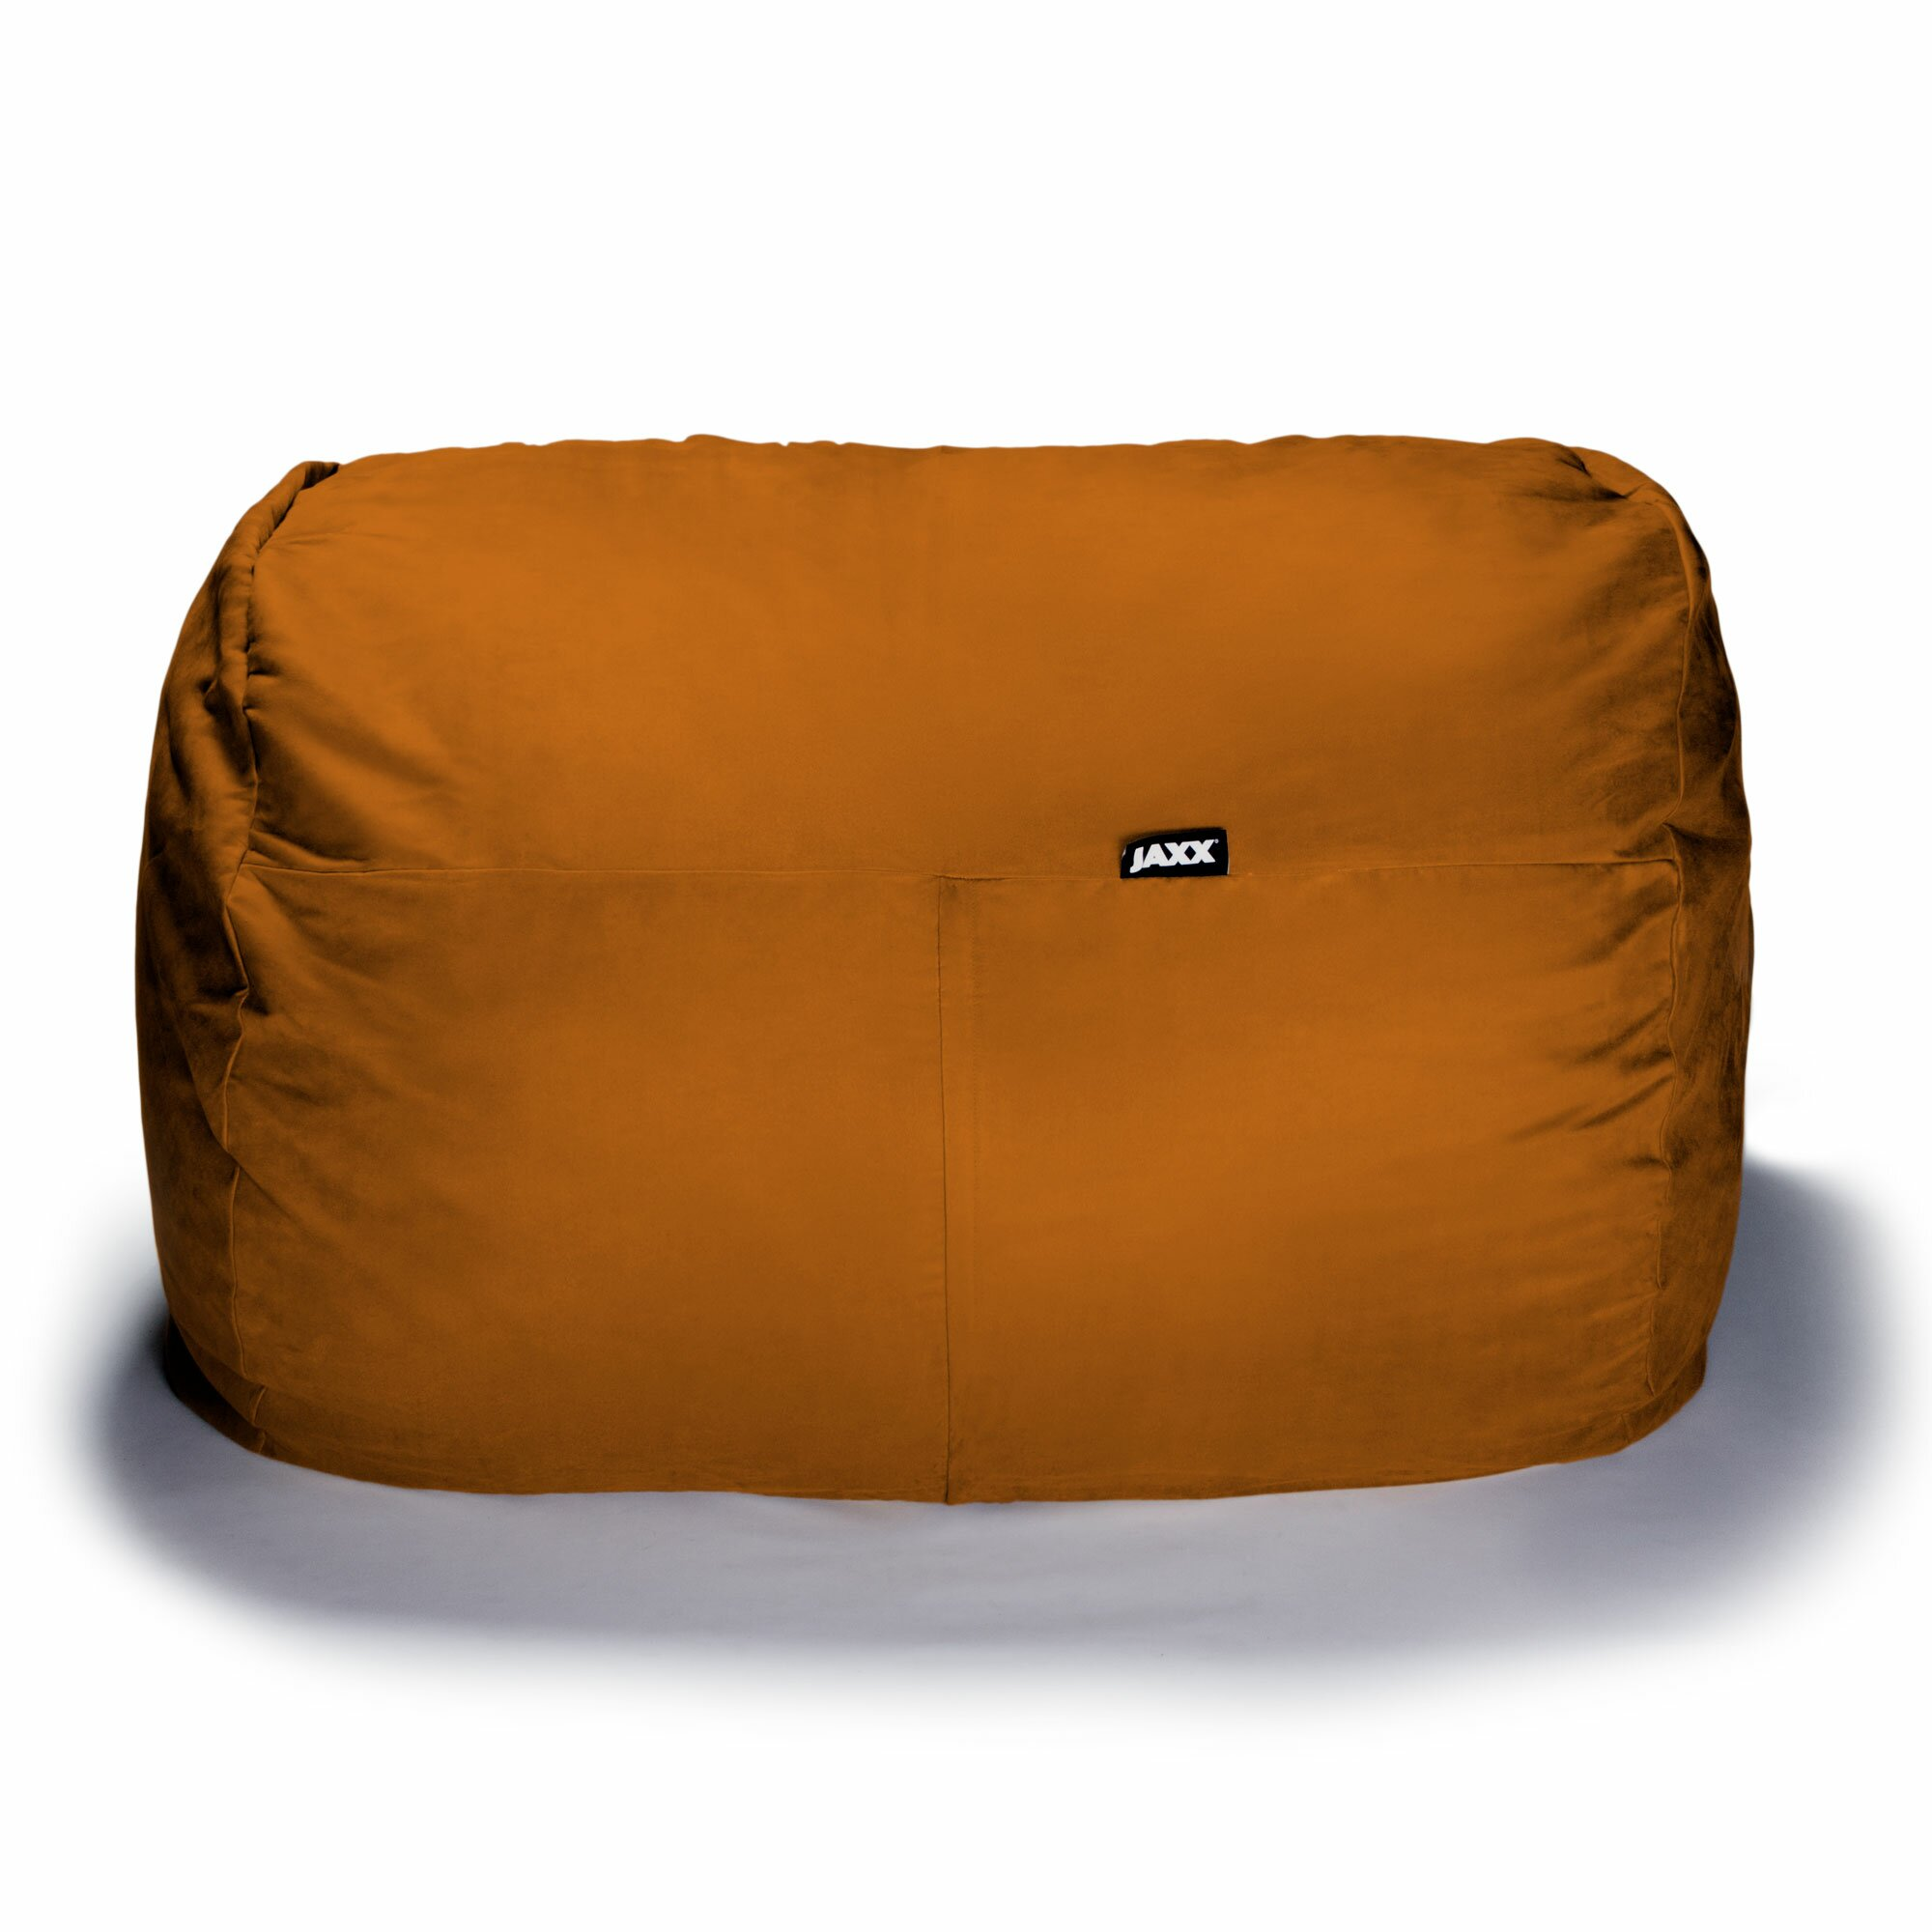 Jaxx Bean Bag Loveseat Reviews Wayfair